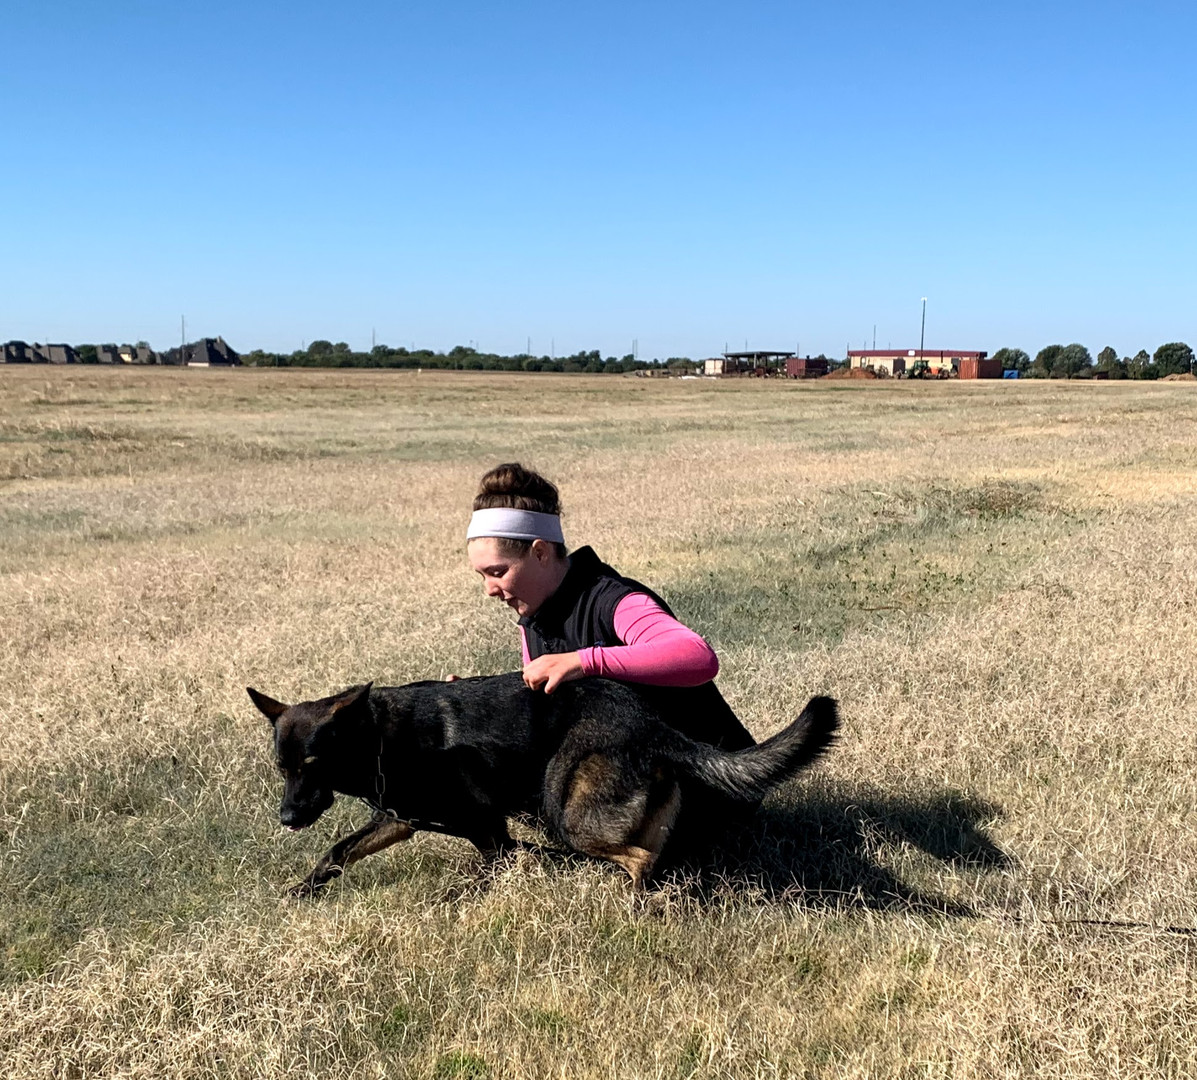 IGP/Schutzhund Trainer, Megan Clouse, & Road Warrior Empress BH, CGC, TKN, TKI